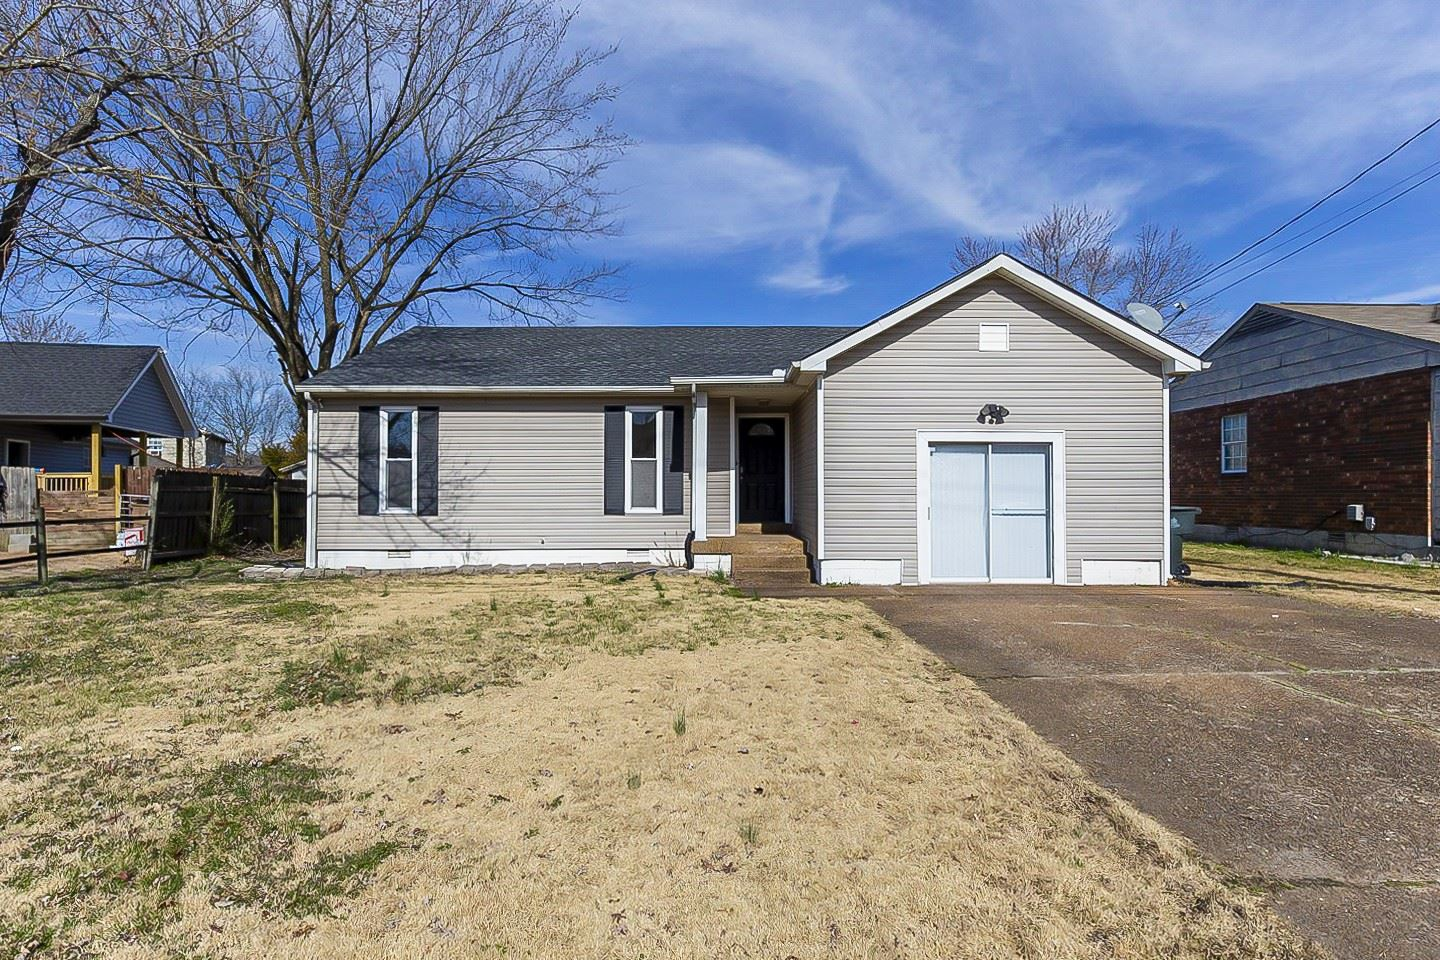 3104 Towne Village Rd, Antioch, TN 37013 - MLS#: 2234771